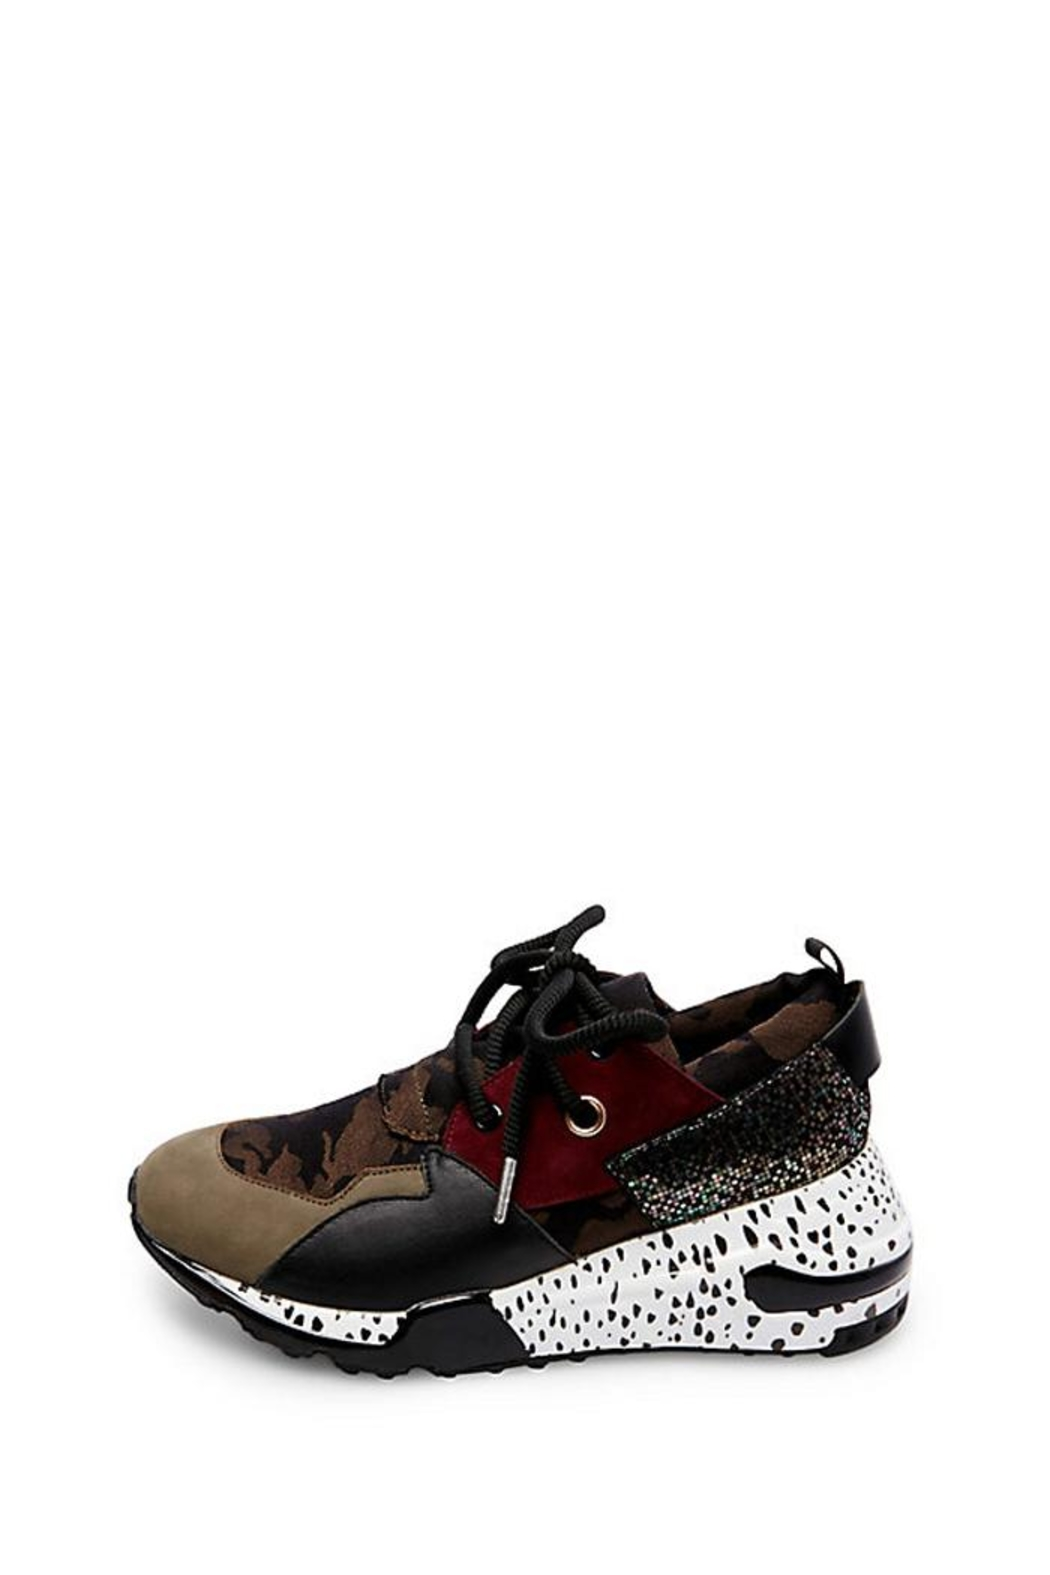 d3d60276cf8 Steve Madden Cliff Sneaker from New York by Luna — Shoptiques